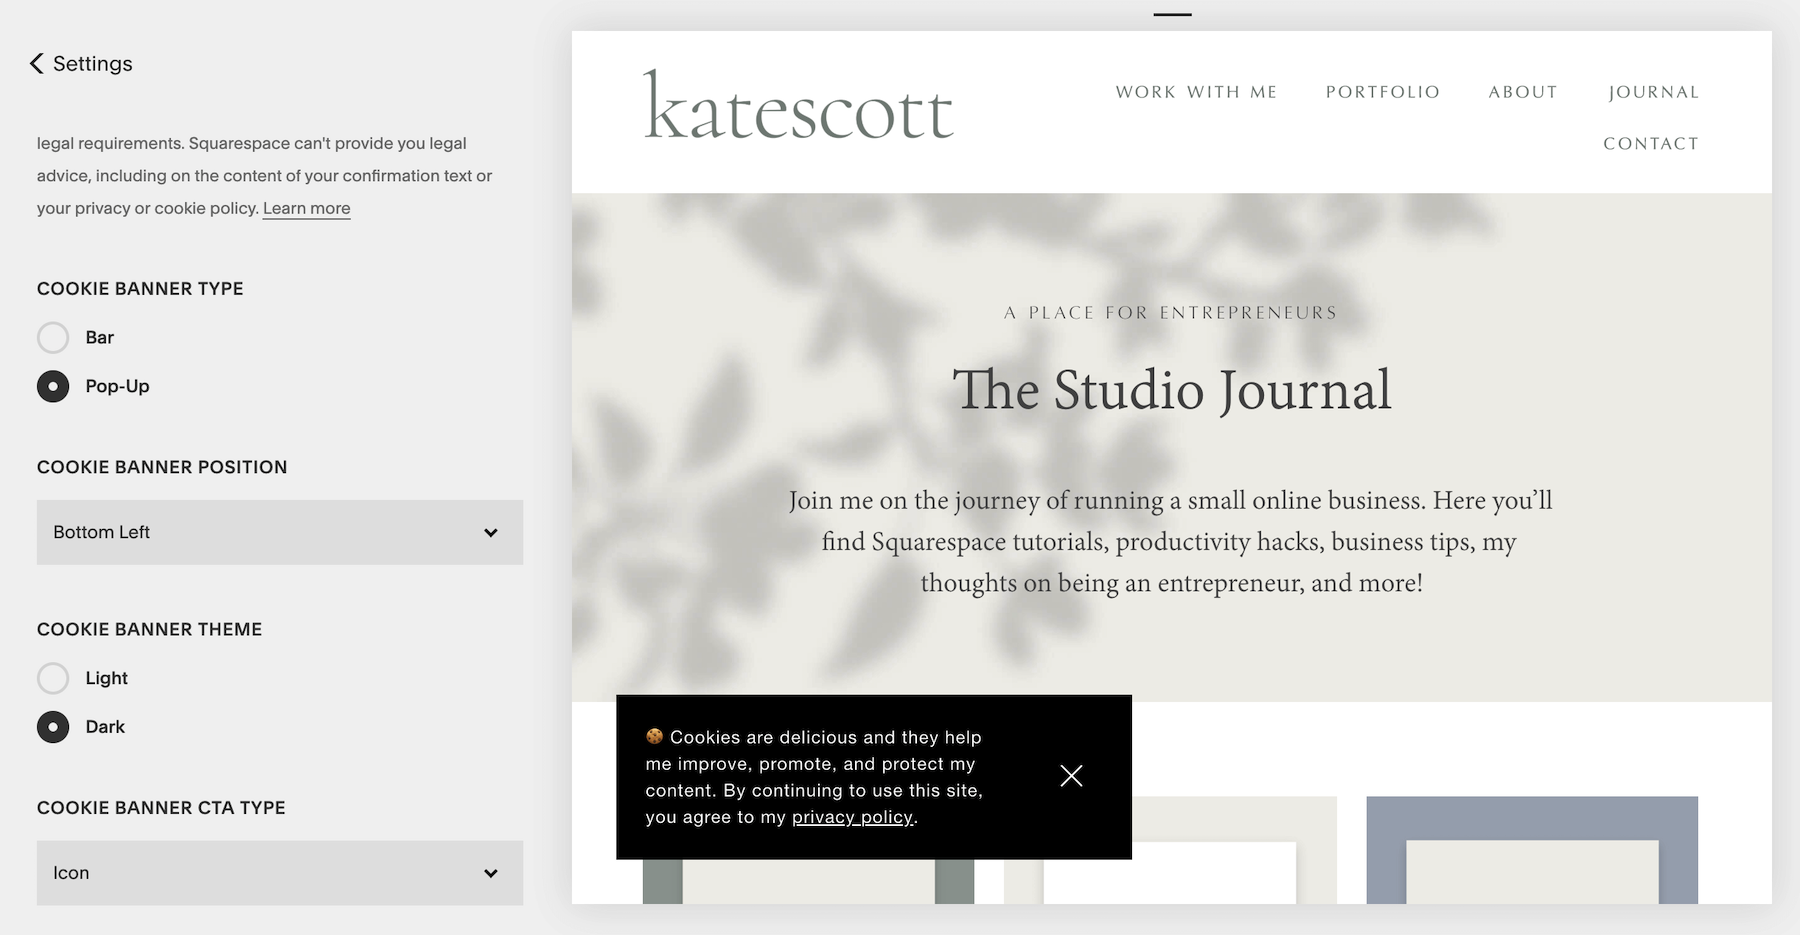 Squarespace Cookie Banner Settings - Cookie Banner Type, Position, Banner Theme, and CTA Type